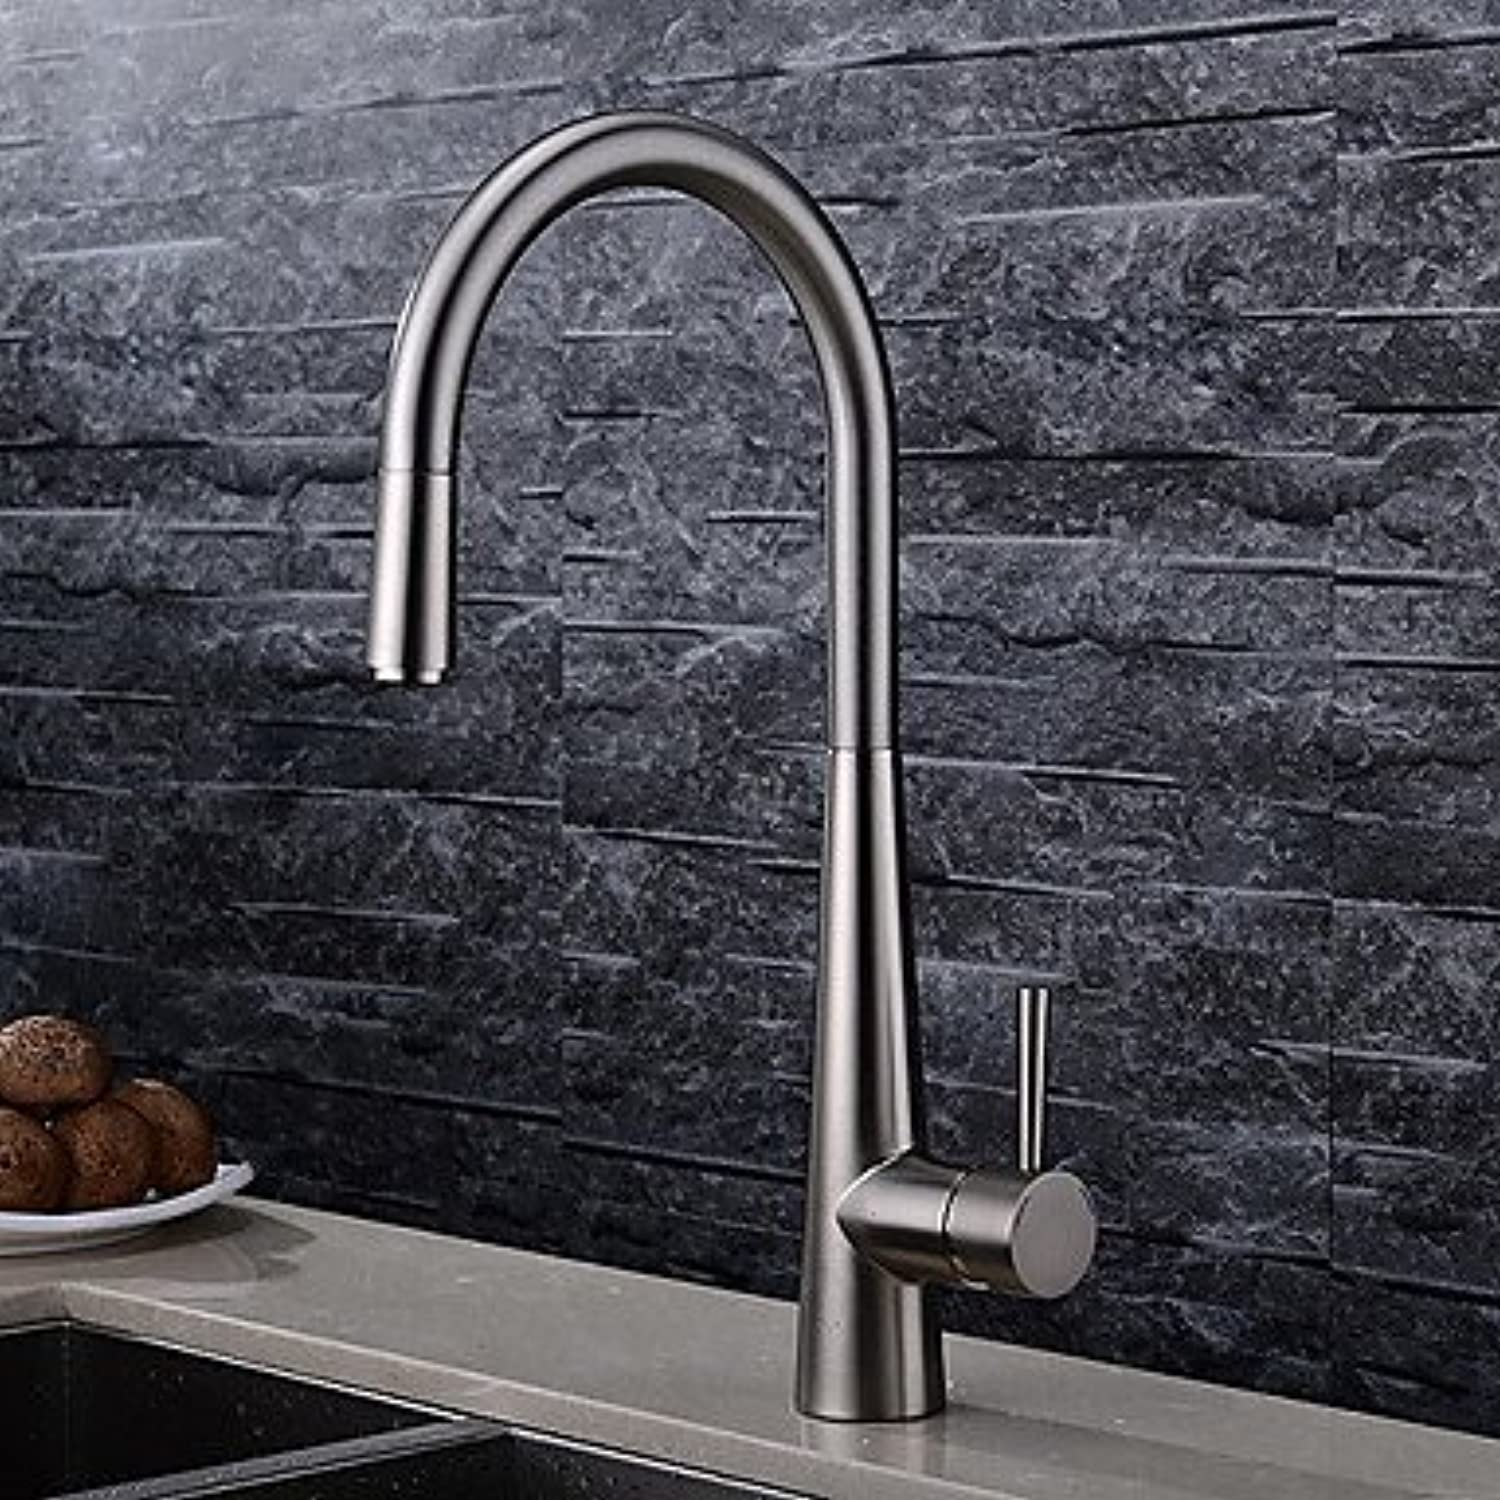 Mangeoo Kitchen Faucet - One Hole Brushed Pull-Out   -Pull-Down Deck Mounted Contemporary Brass Single Handle One Hole